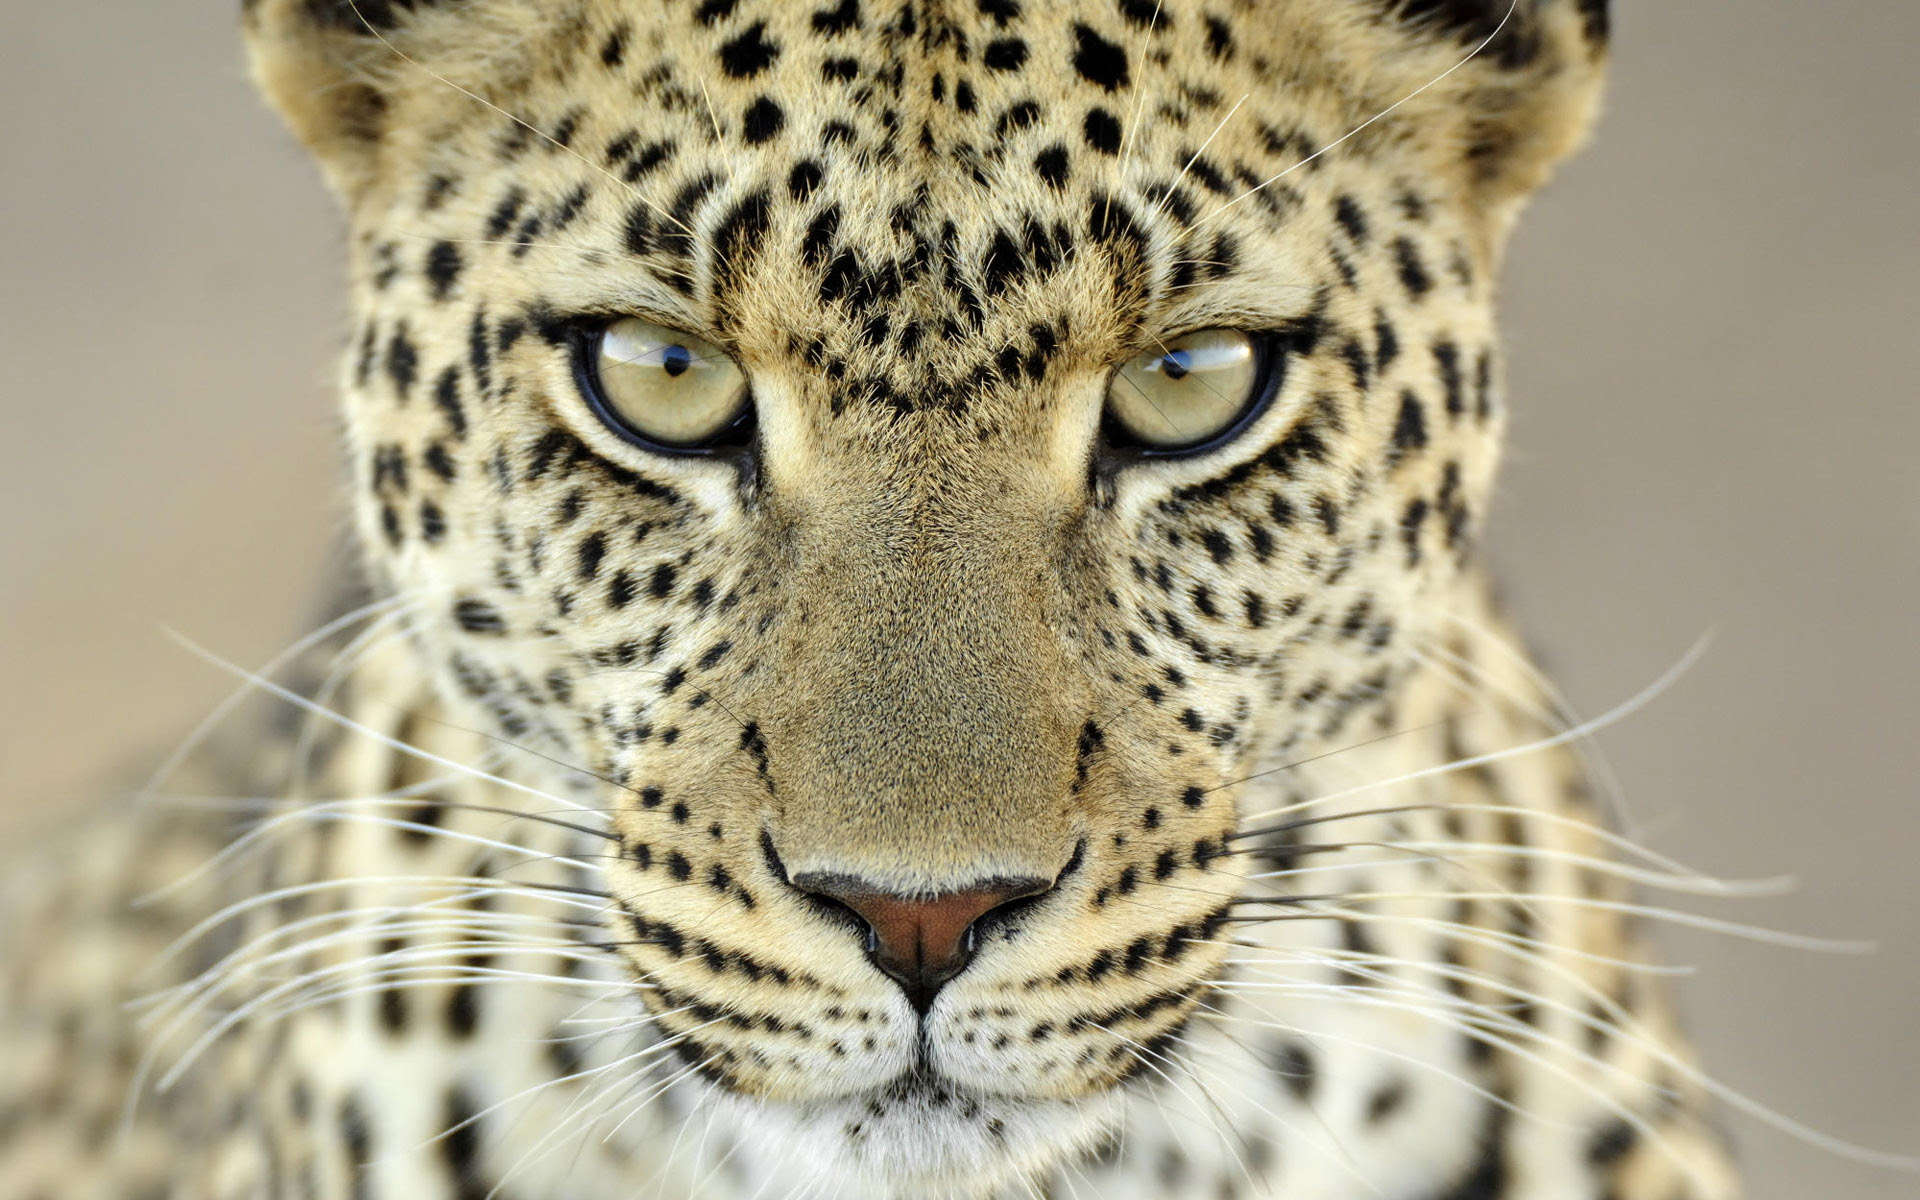 Big Cats Images Leopard Hd Wallpaper And Background Photos 40623425